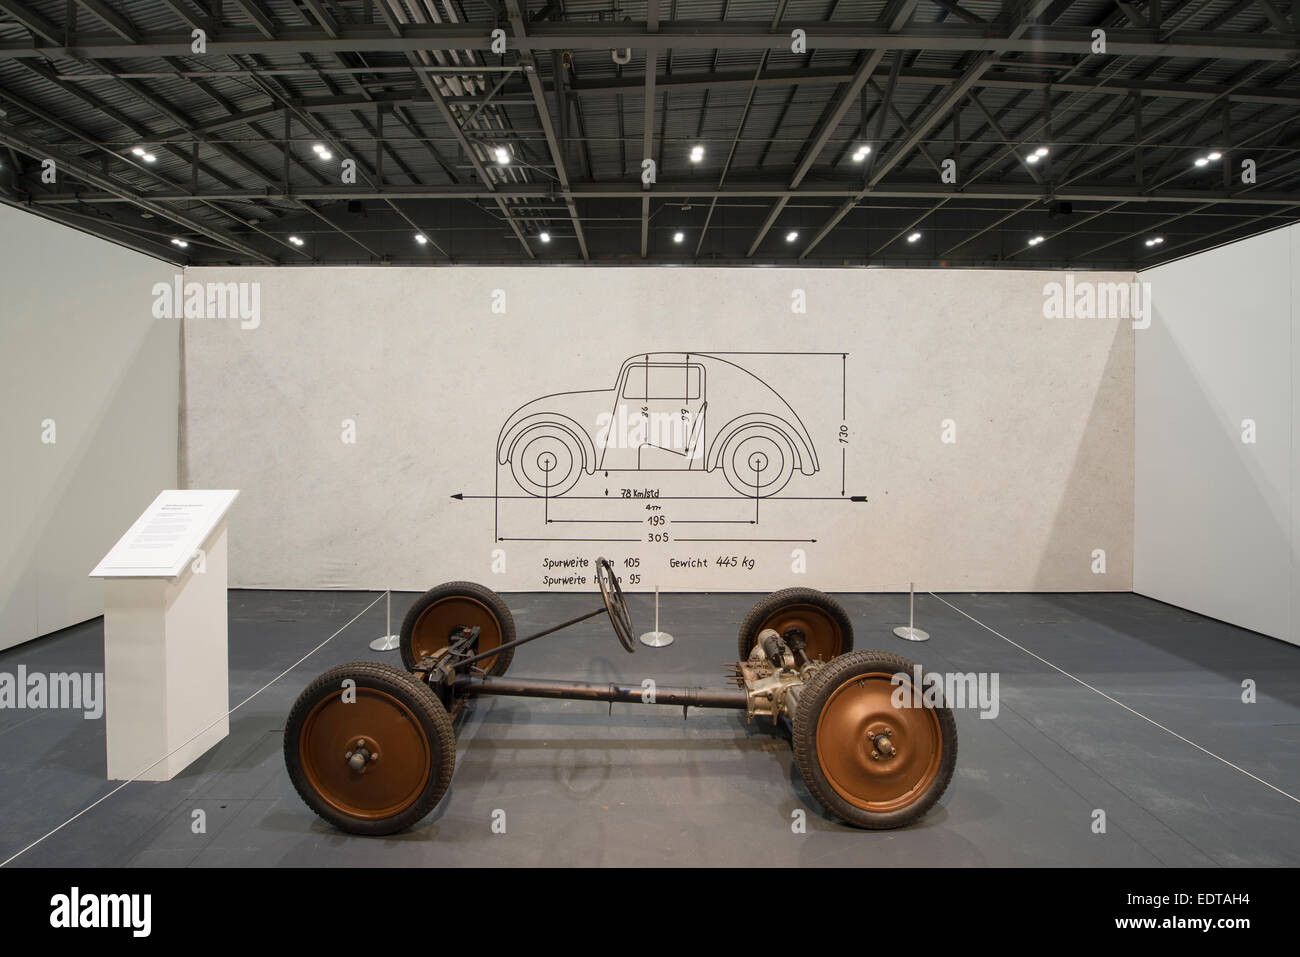 Excel, London's Docklands, UK. 9th January, 2015. James May's Chamber of Bloody Mindedness at The London Classic - Stock Image